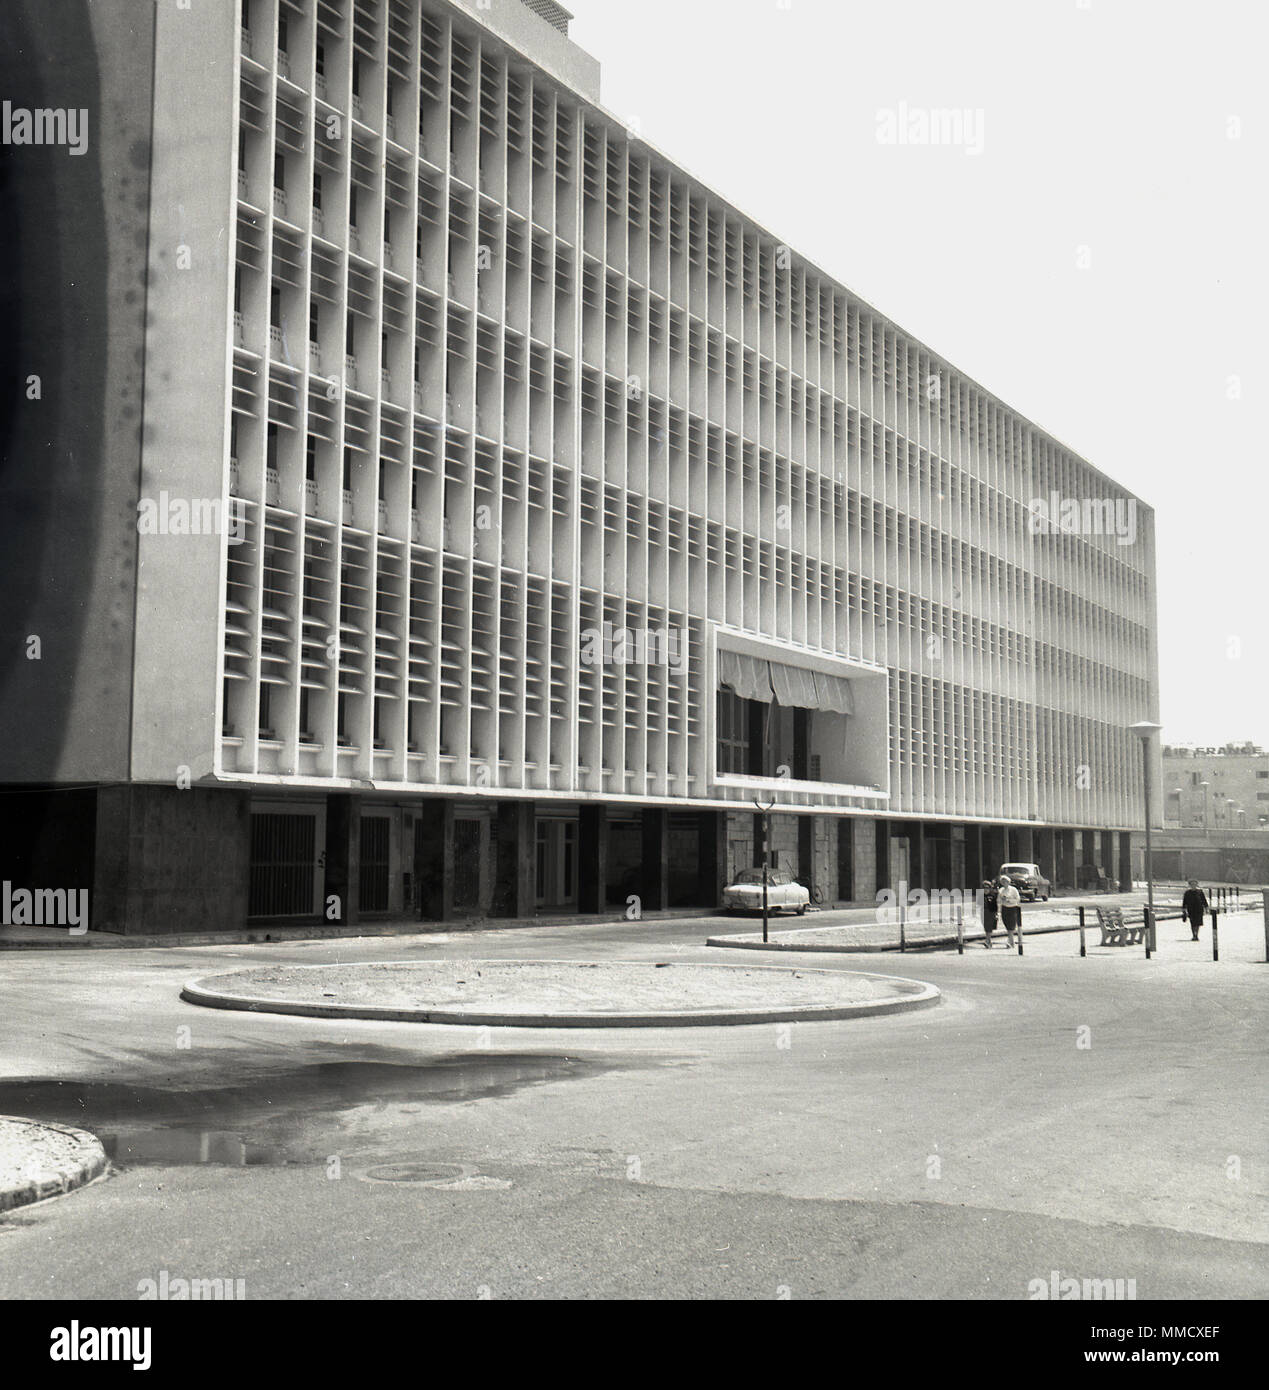 1960s, exterior view of a very large modern sixties style office block building in Tel Aviv, israel. - Stock Image